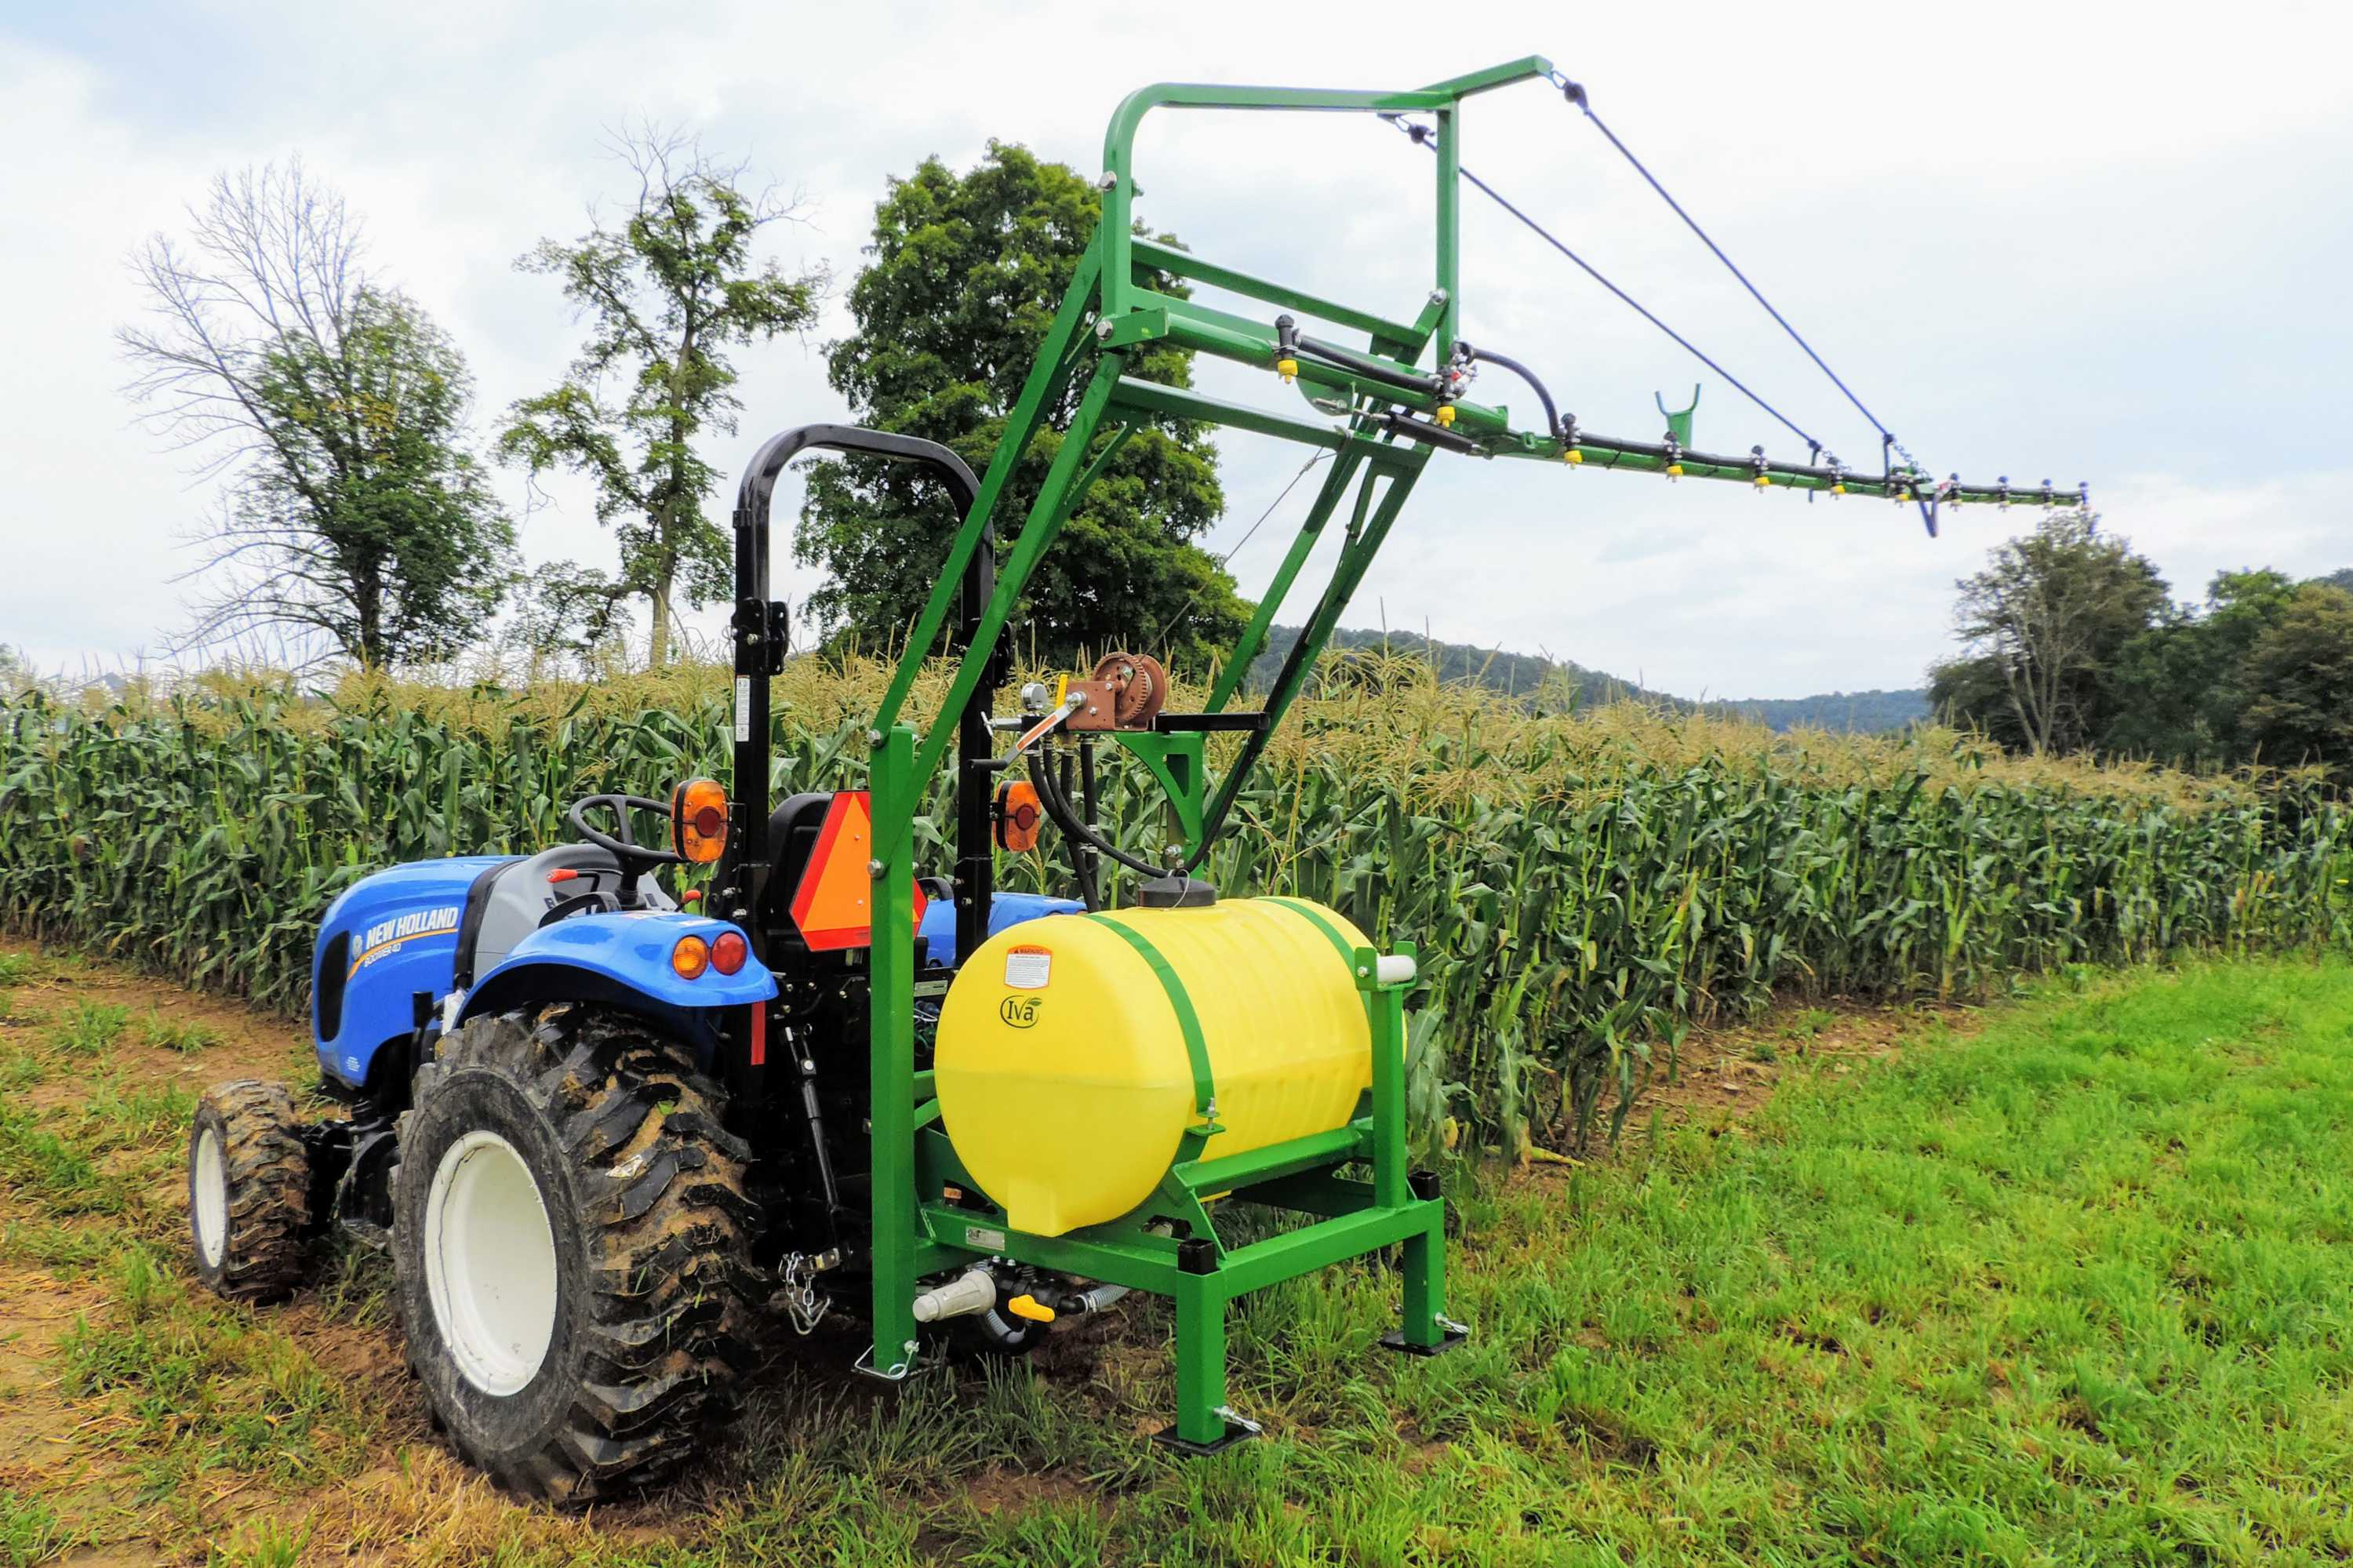 55 gallon 3-point Hitch Produce Sprayer